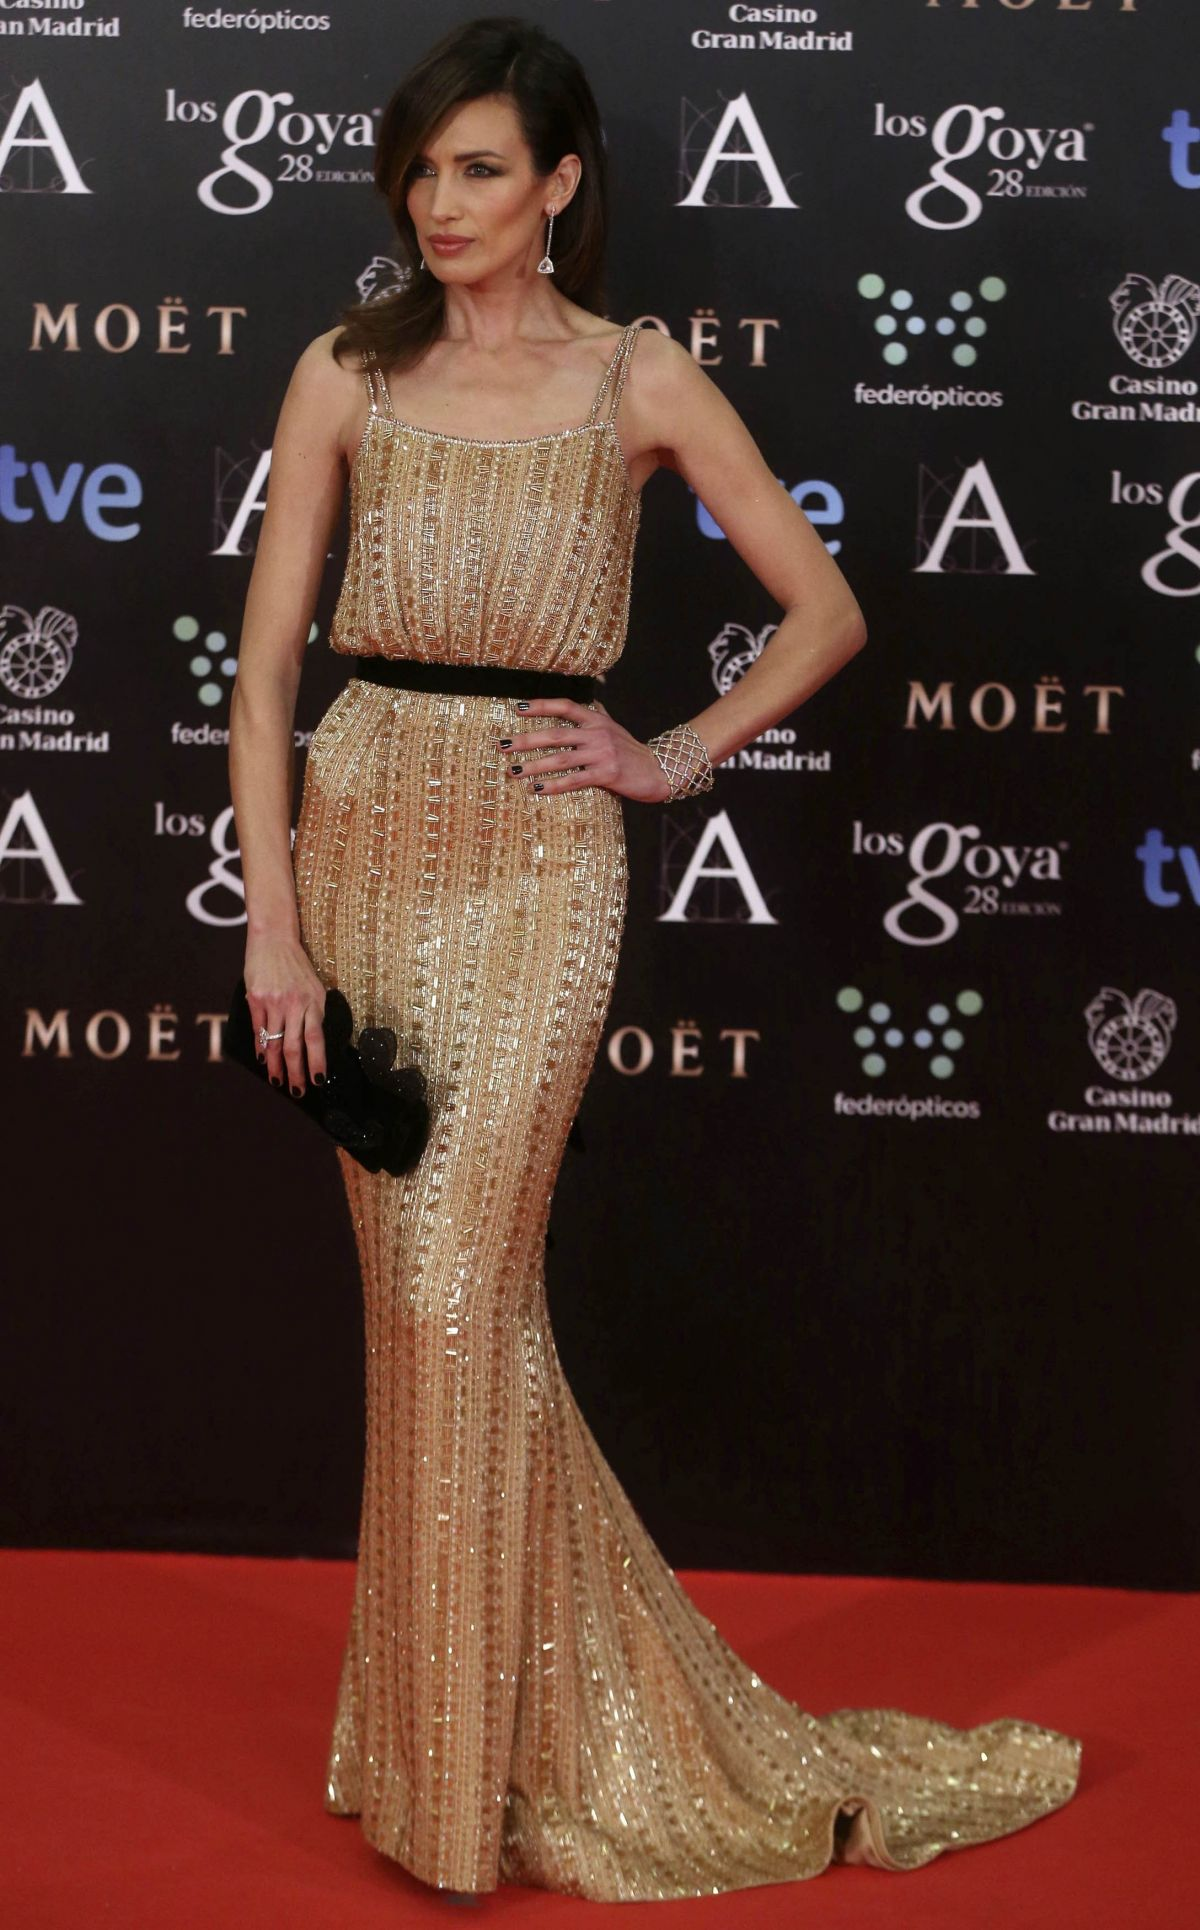 NIEVES ALVAREZ at 2014 Goya Film Awards in Madrid